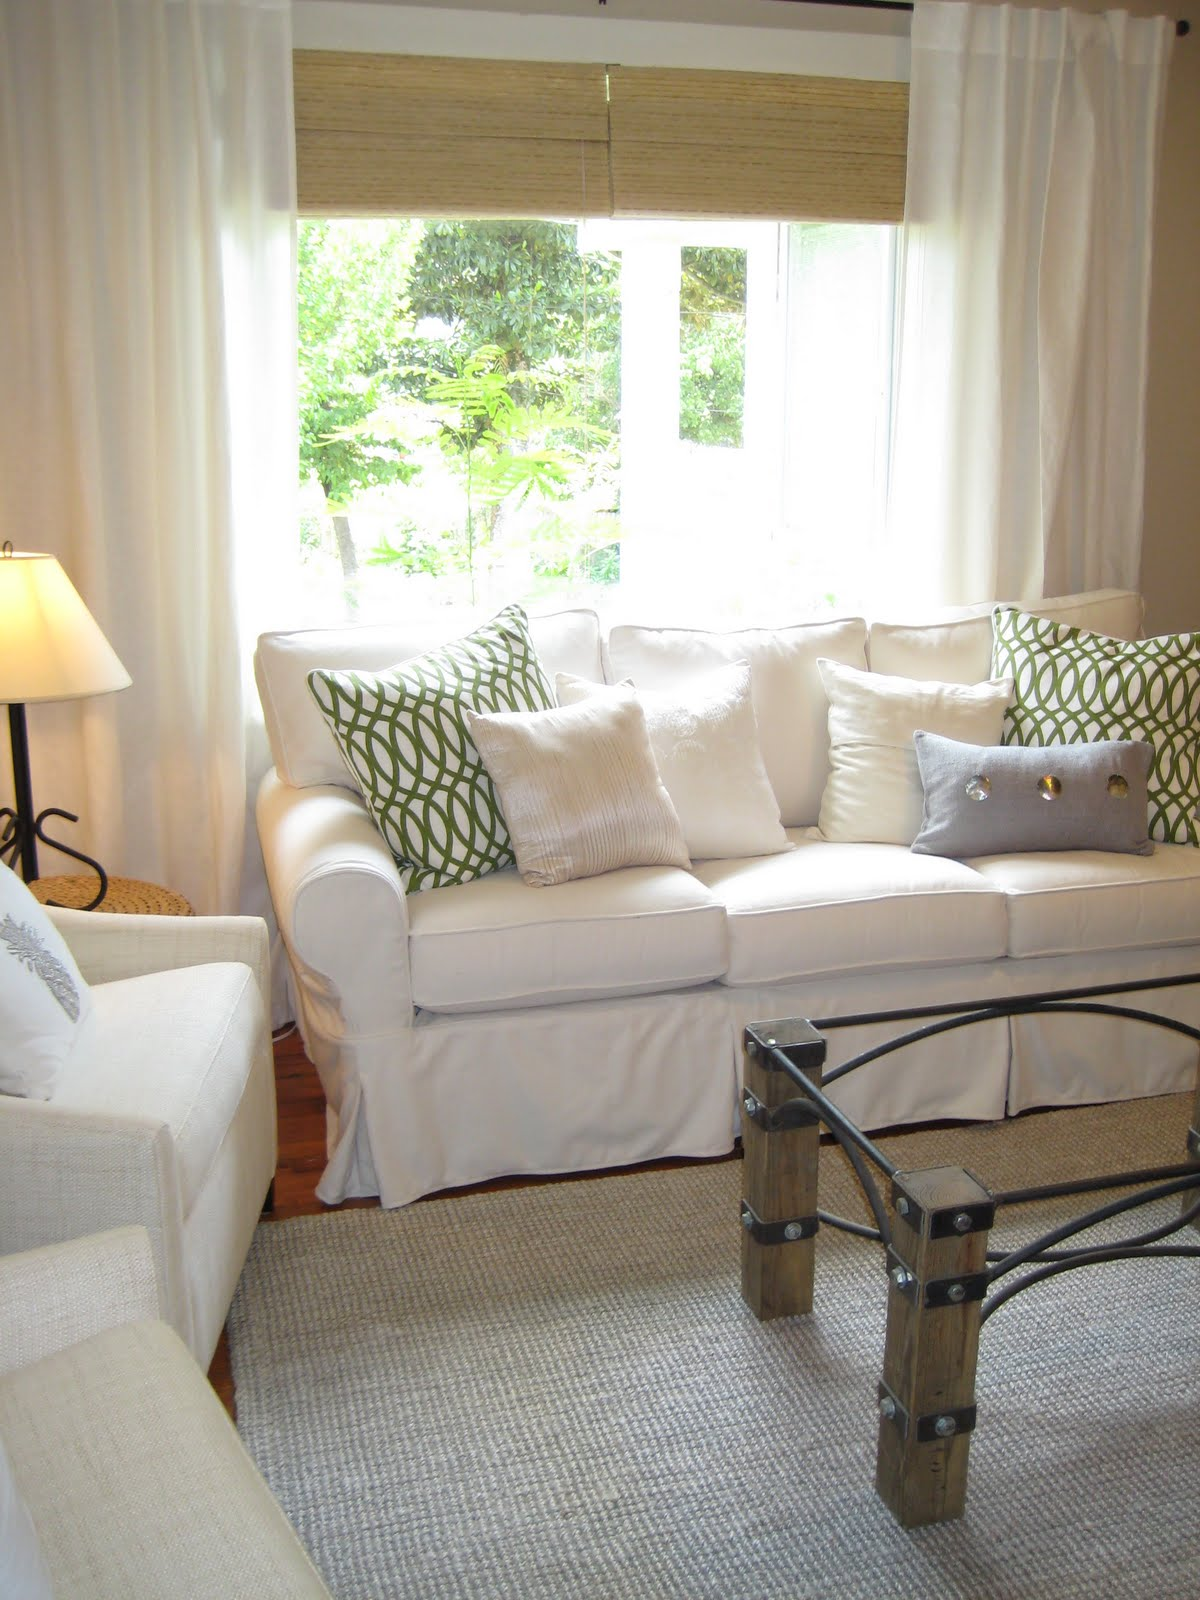 Pottery Barn Sofa Guide and Ideas MidCityEast : Complete Old Fashioned Living Room with White Pottery Barn Sofa and Rustic Table on Grey Carpet from midcityeast.com size 1200 x 1600 jpeg 237kB